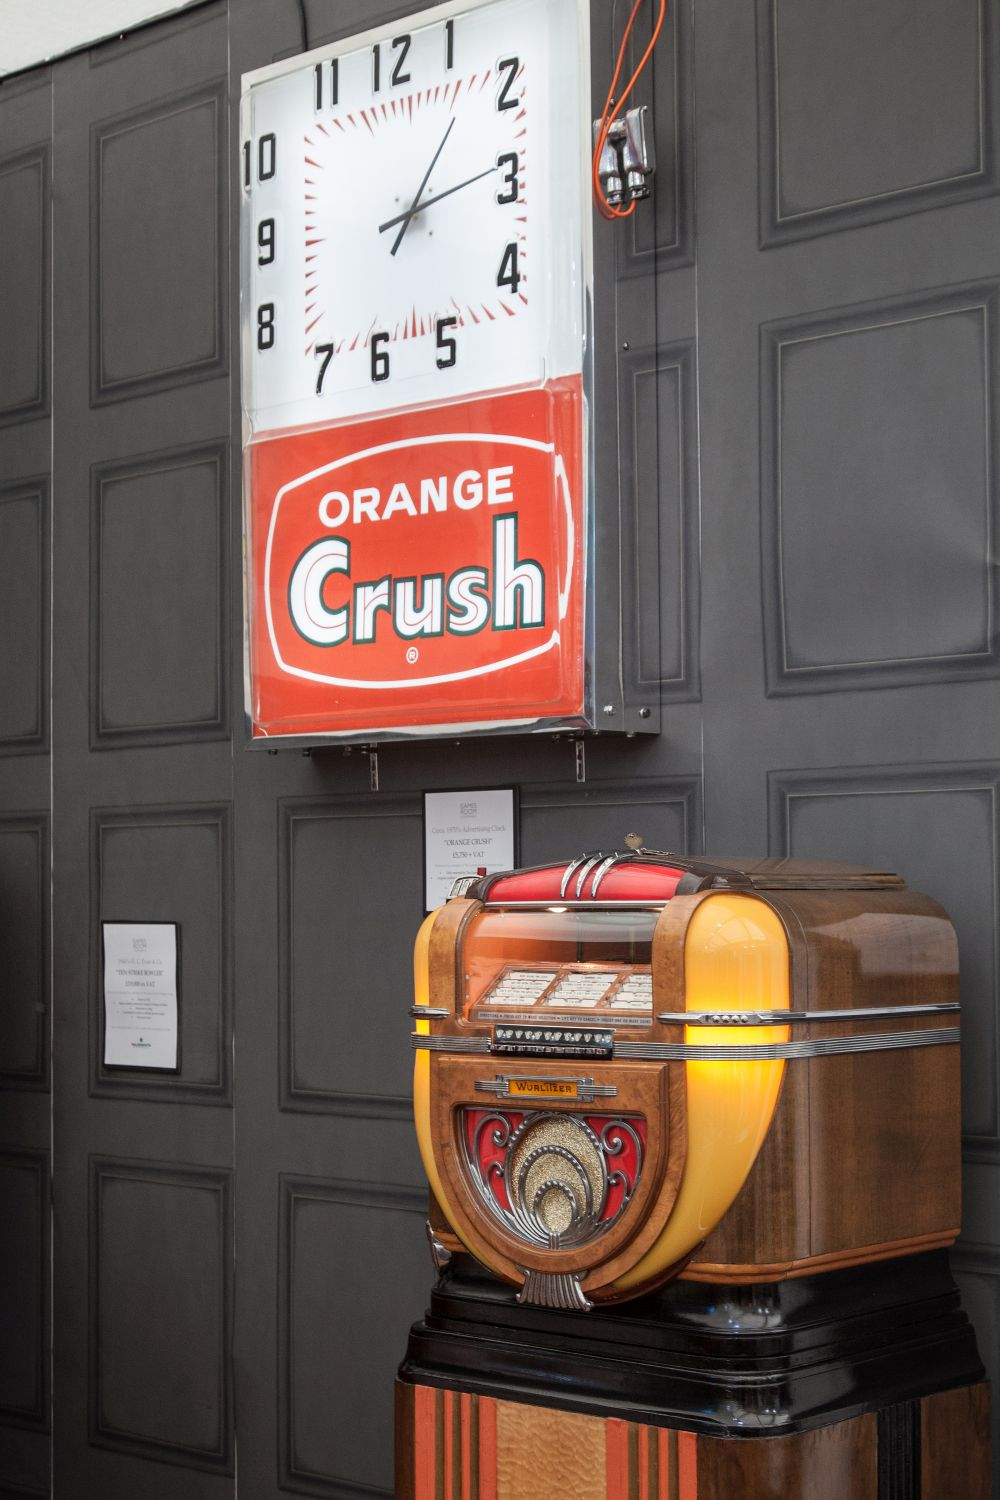 Old-fashioned signs and pieces like jukeboxes work well in a man cave.